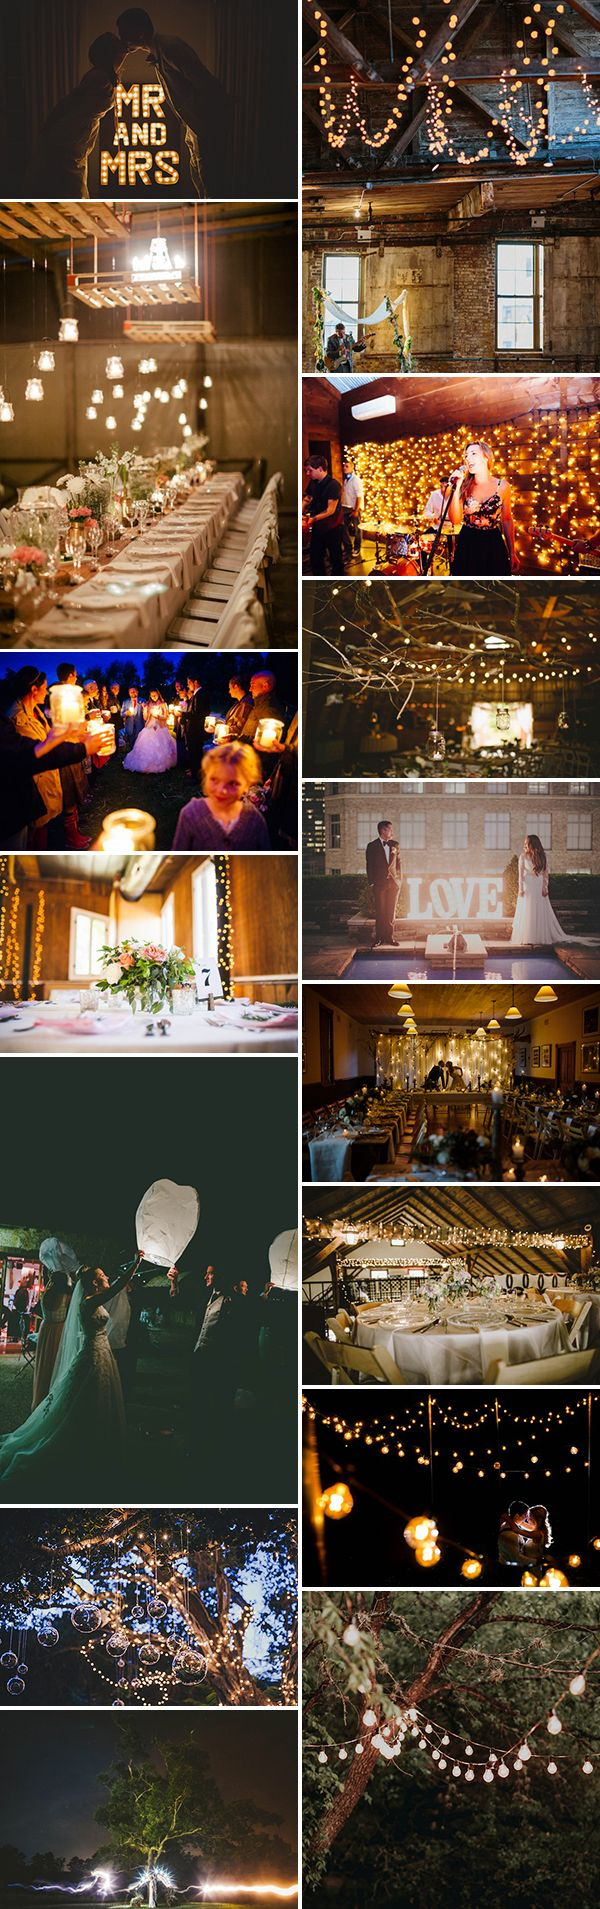 There are so many fun ways to incorporate beautiful lighting into your wedding!